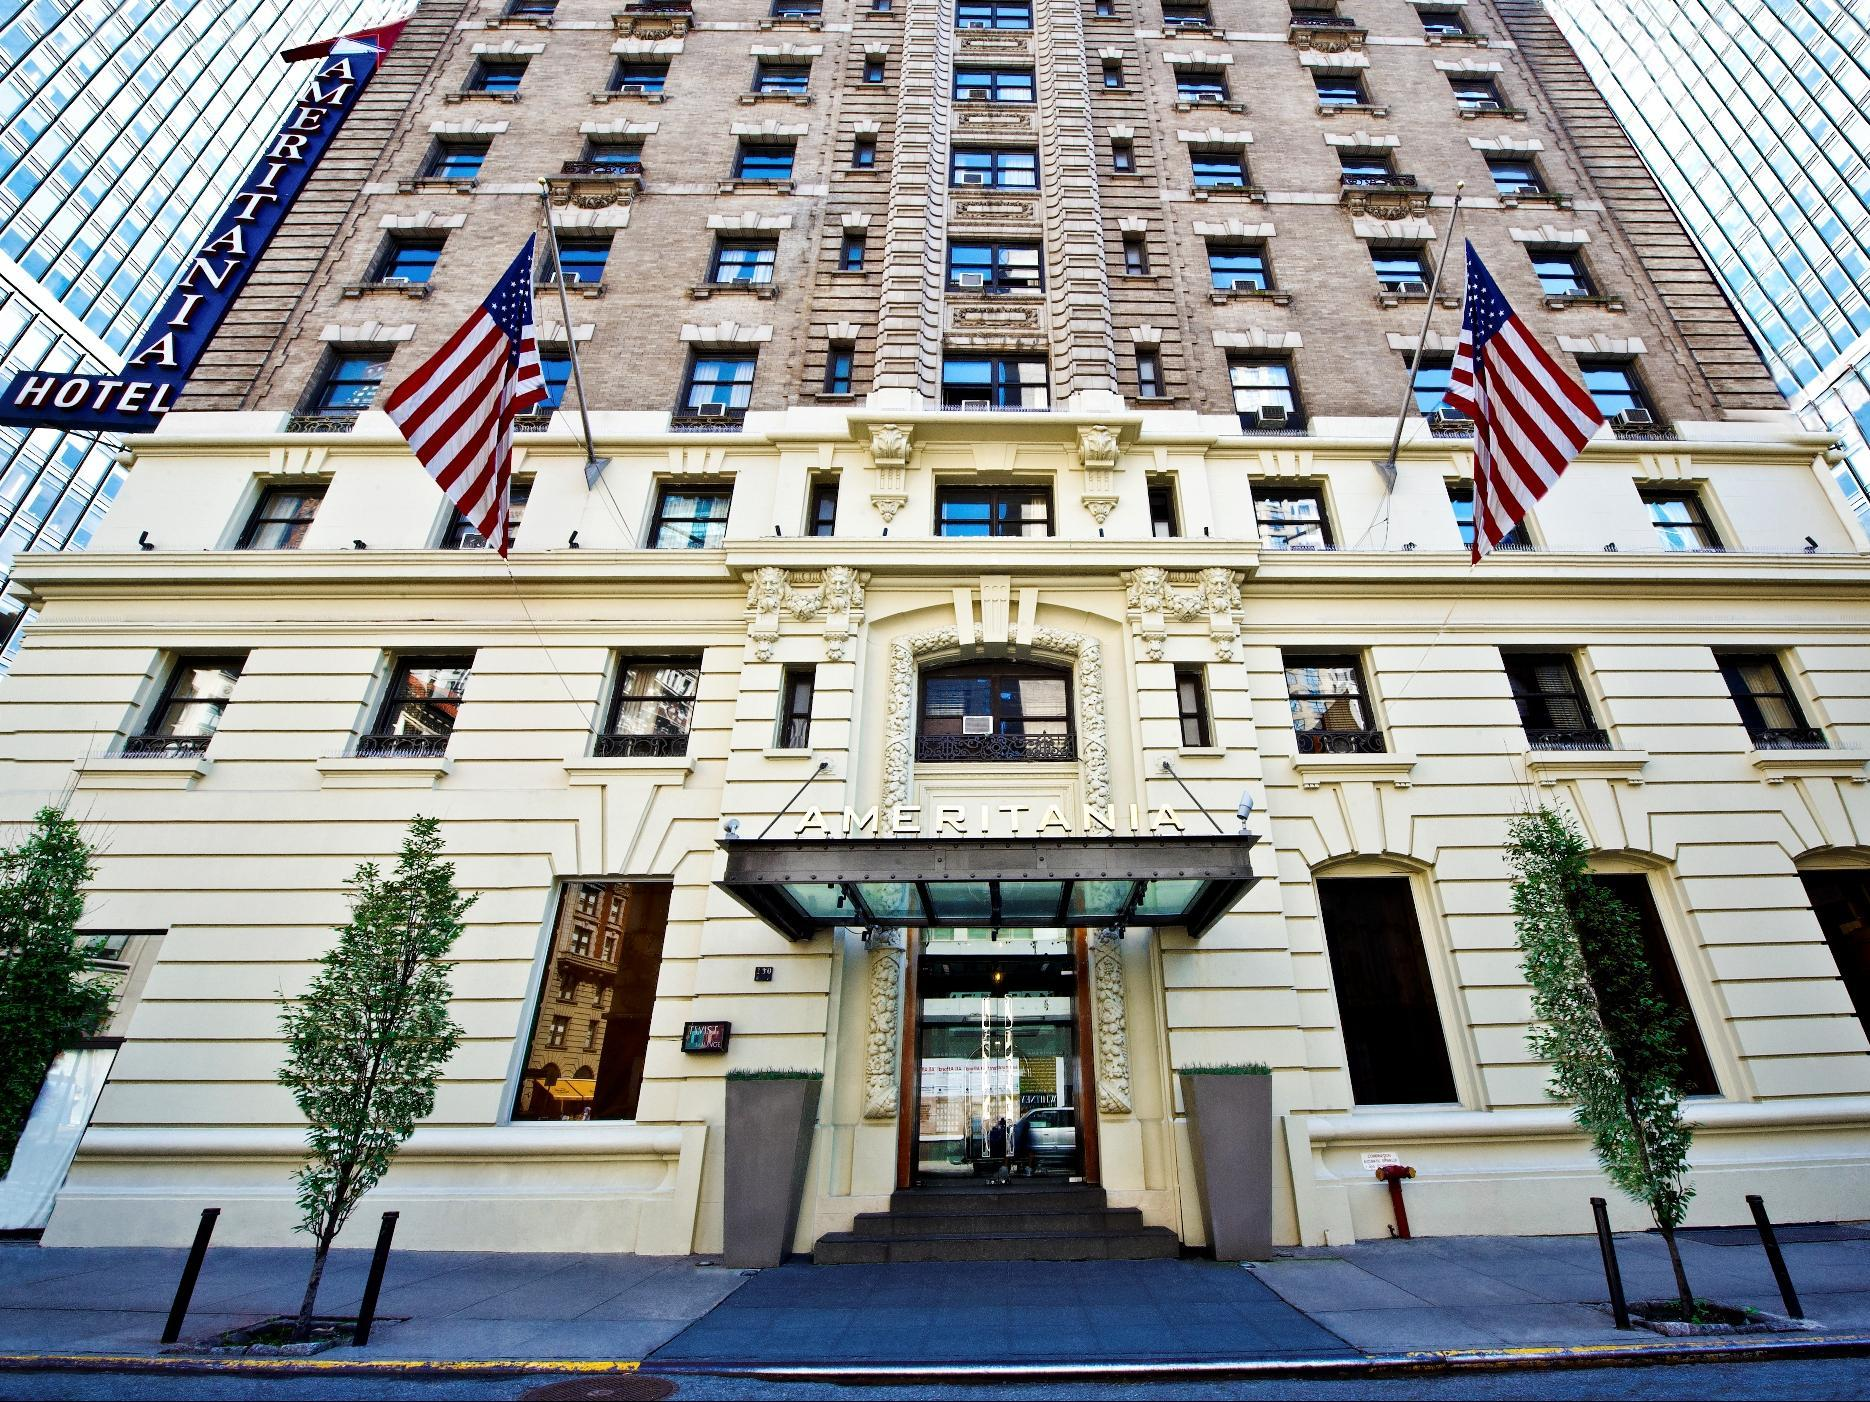 Ameritania Hotel at Times Square - Hotel and accommodation in Usa in New York (NY)